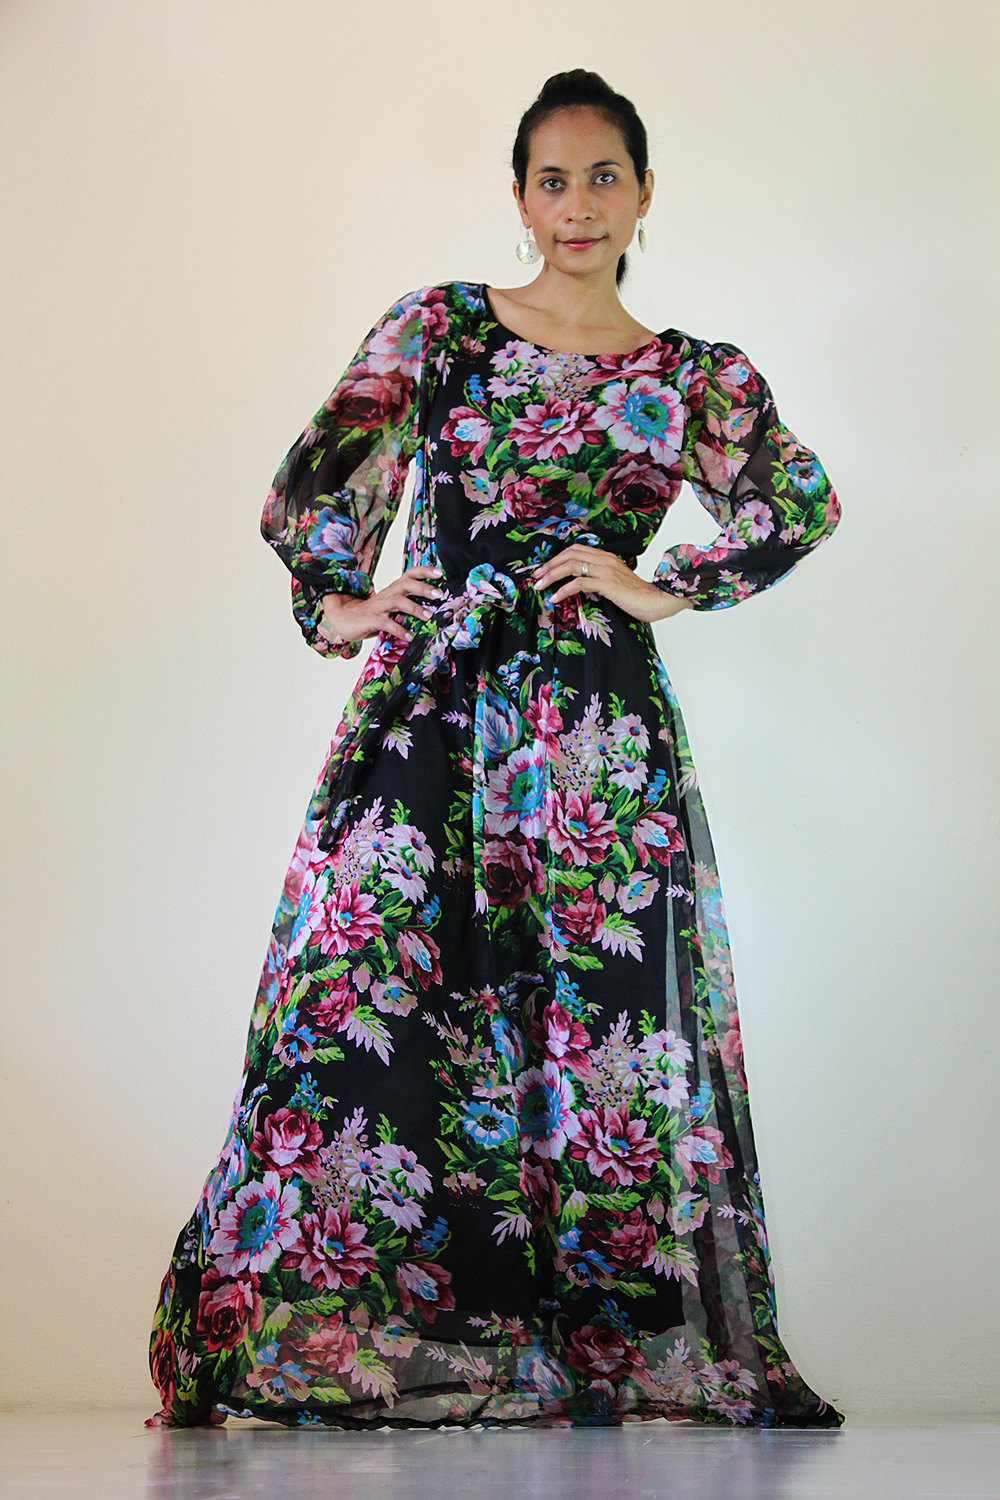 Black Chiffon Dress Long Maxi Dress Flower Print : Smooth as Silk Collection IV